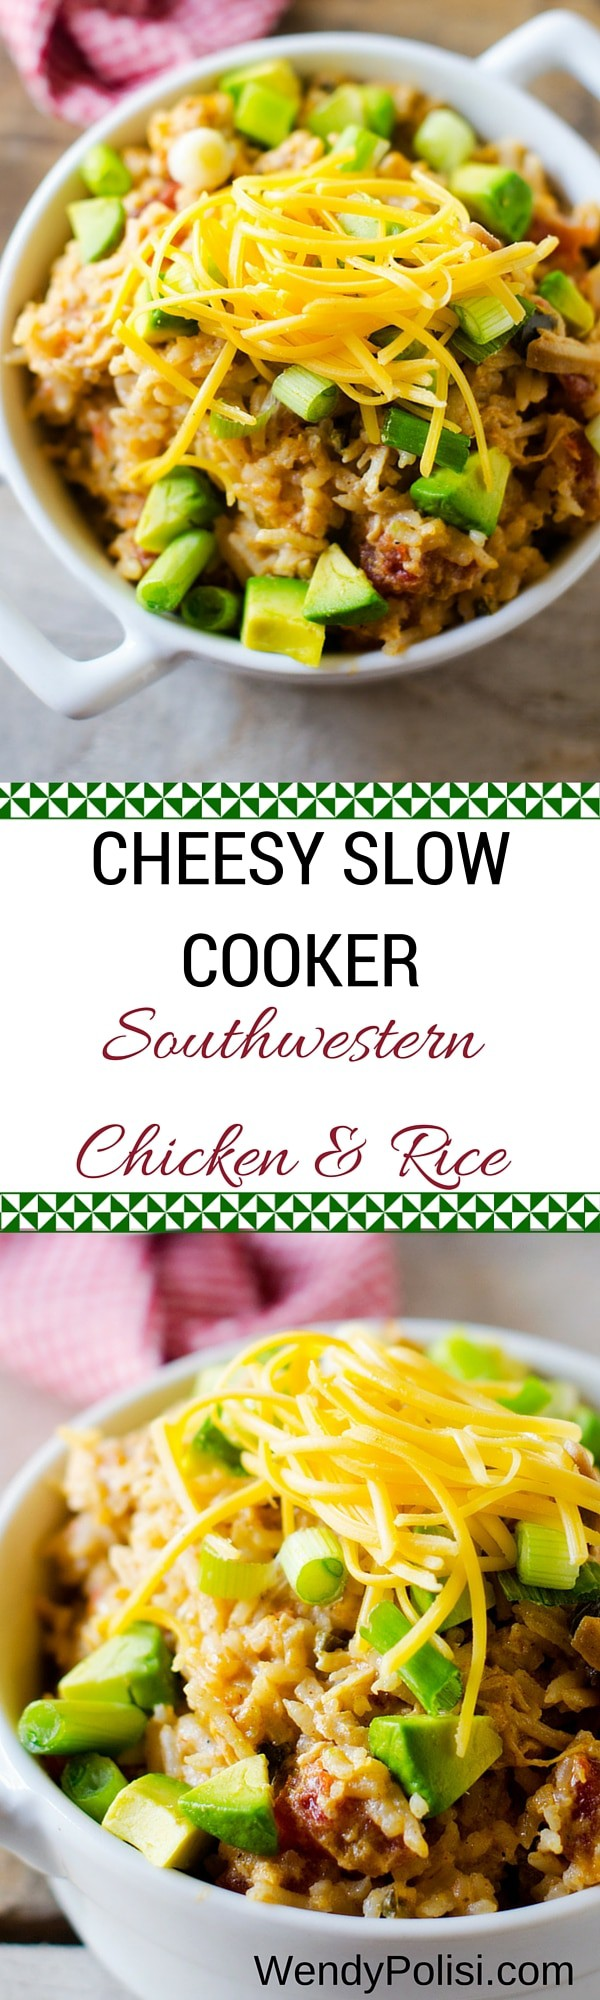 Cheesy Slow Cooker Southwestern Chicken & Rice - This healthy Crock Pot casserole recipe is an easy weeknight dinner. It can be made with either quinoa or rice!